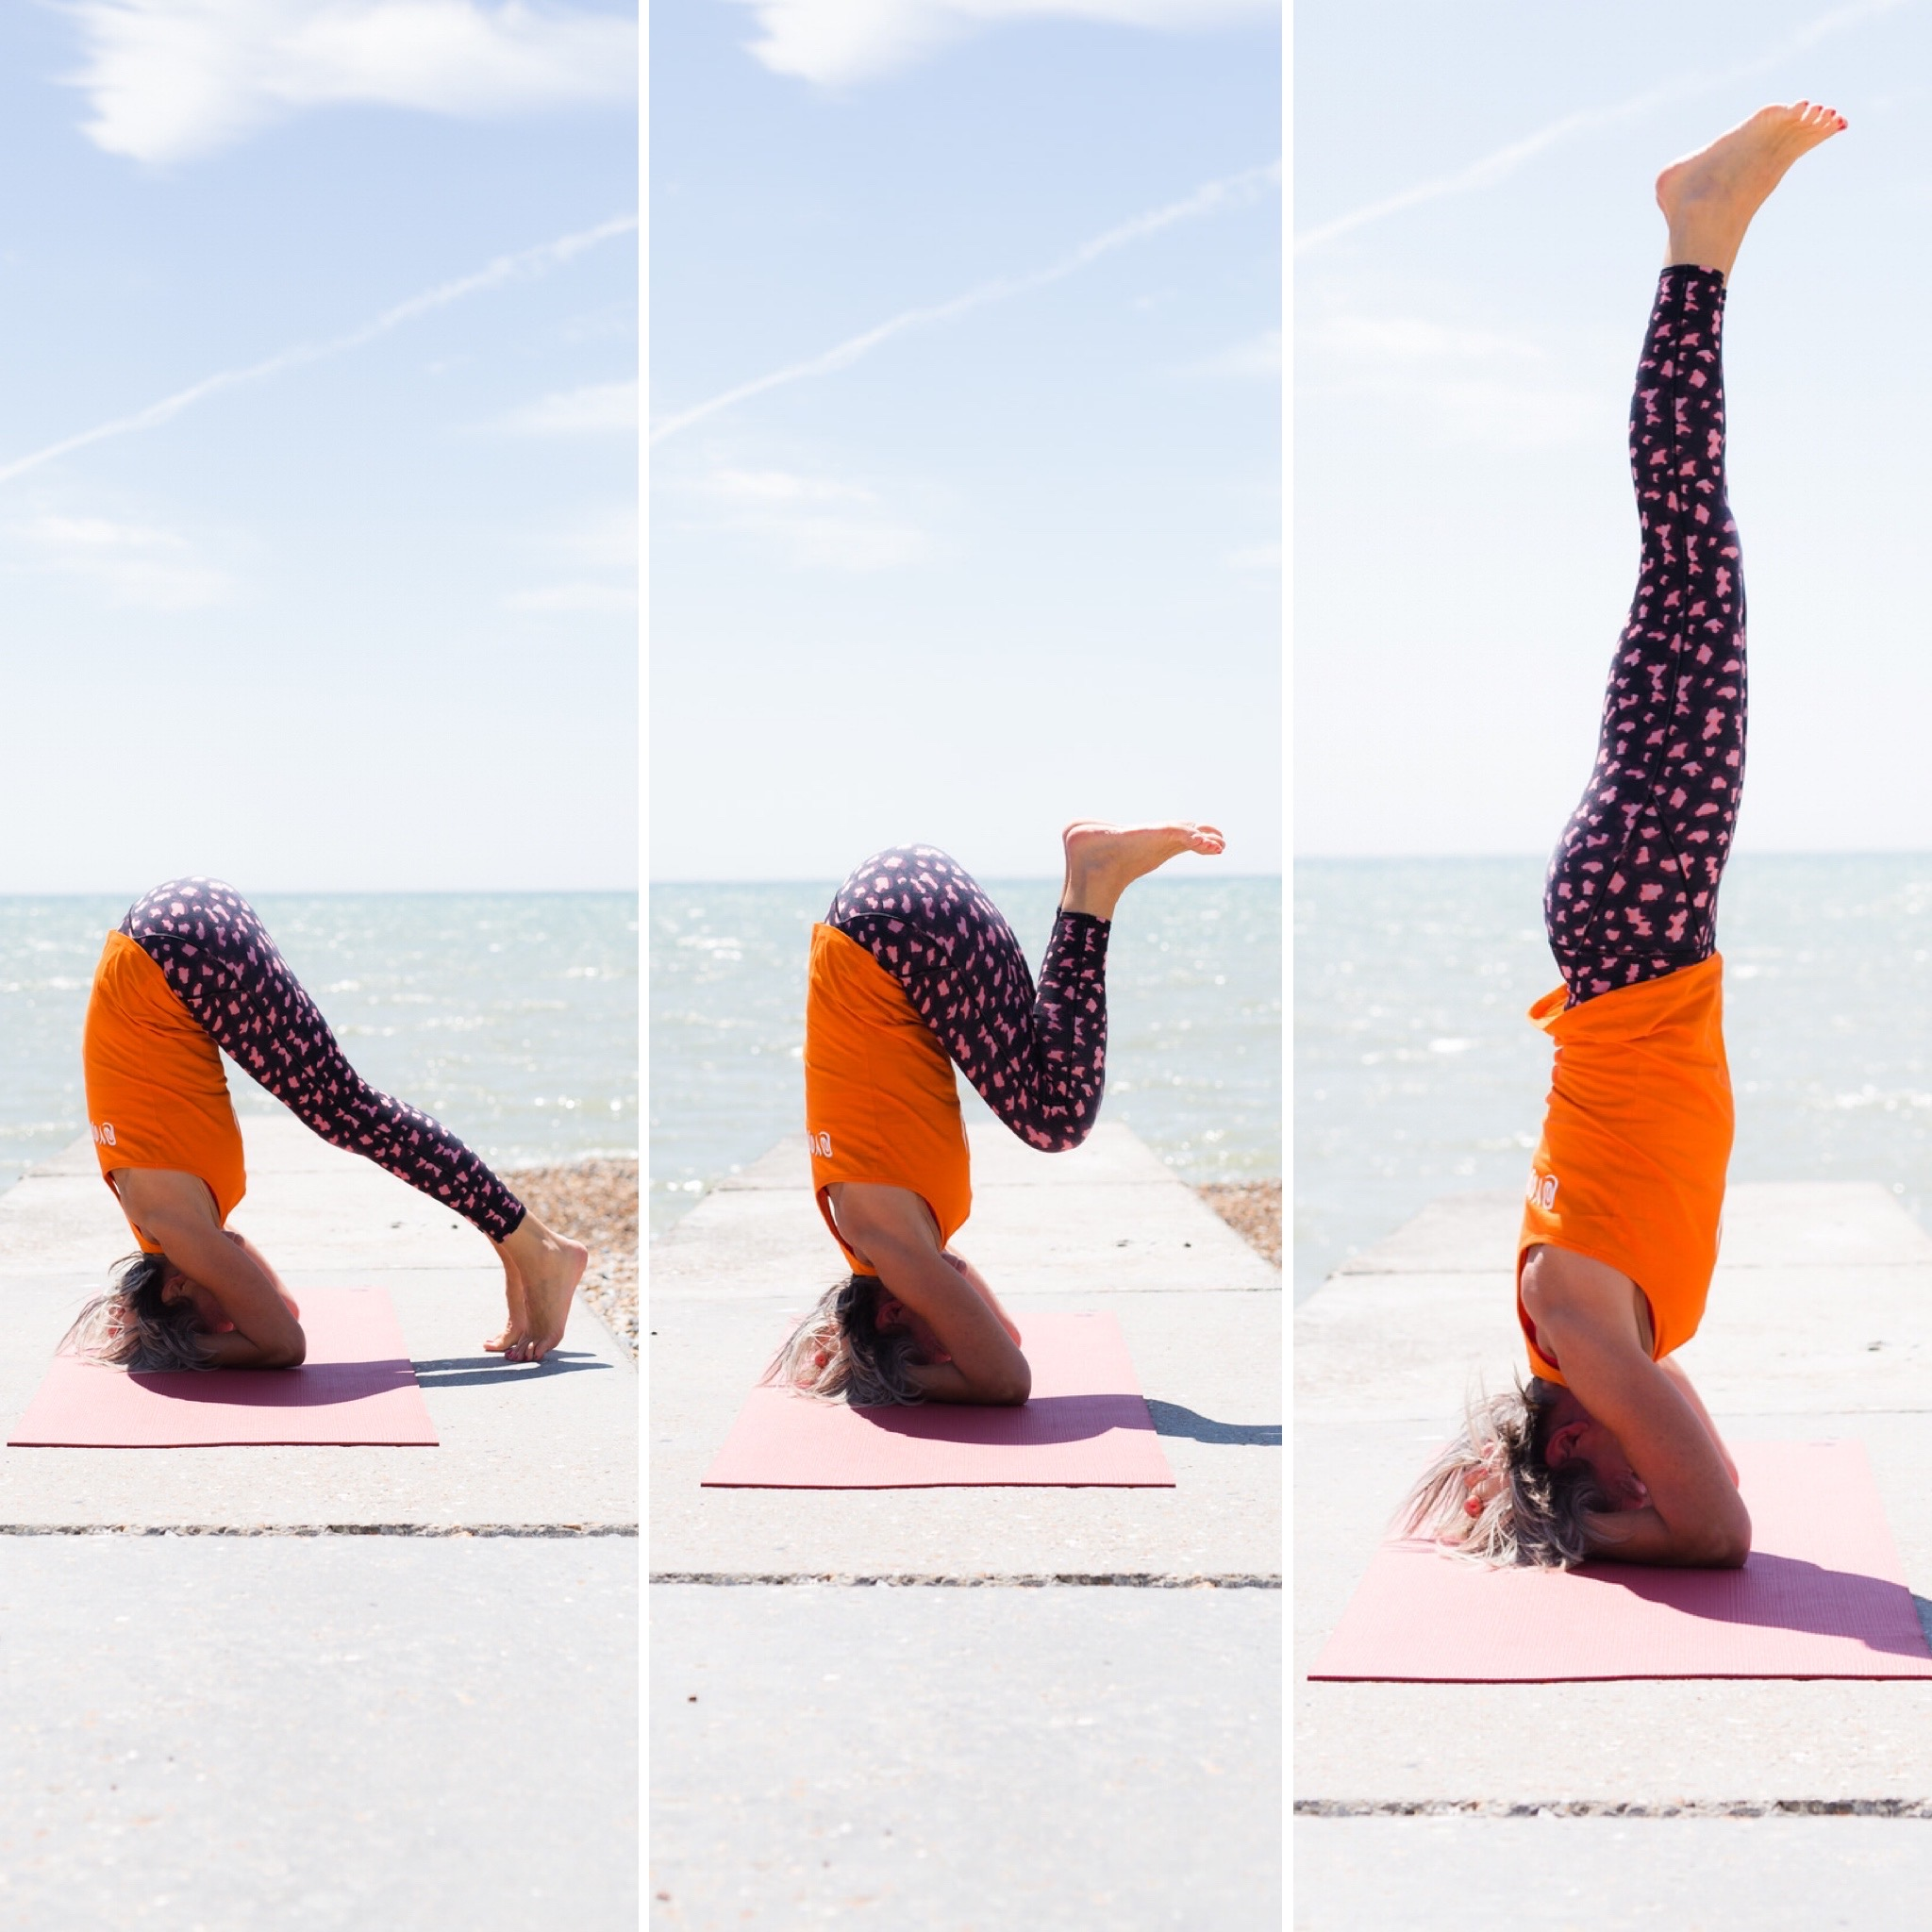 YogaWithVickiB demonstrating three stage sequence to achieve supported headstand